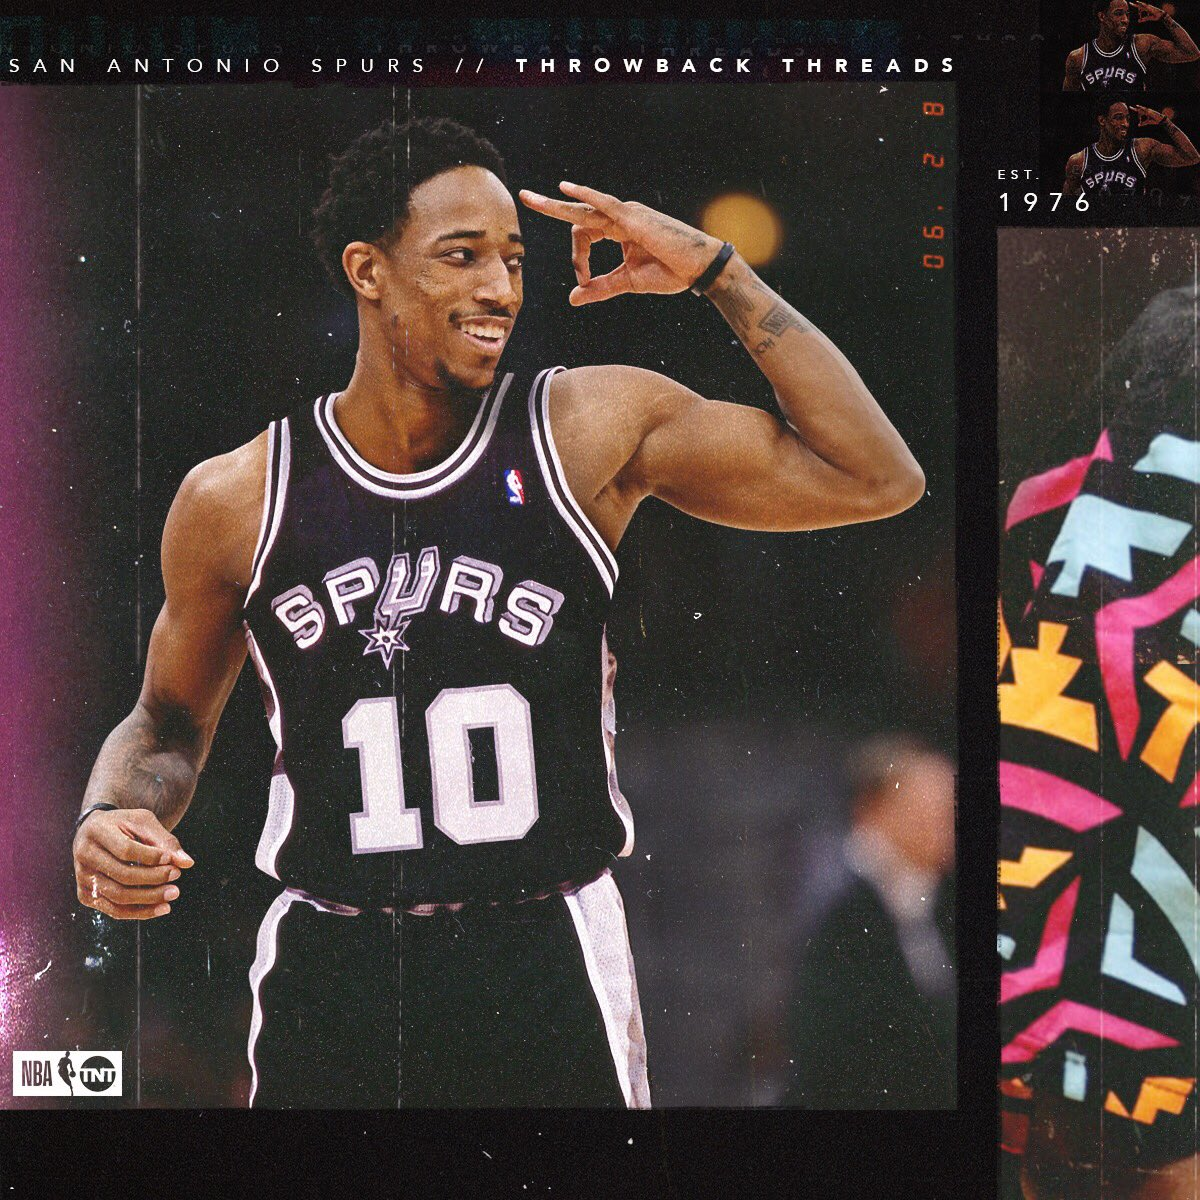 .@DeMar_DeRozan looks to start the next chapter in his new city. ��  Throwback Threads �� #TBT https://t.co/9M00fiQM7b